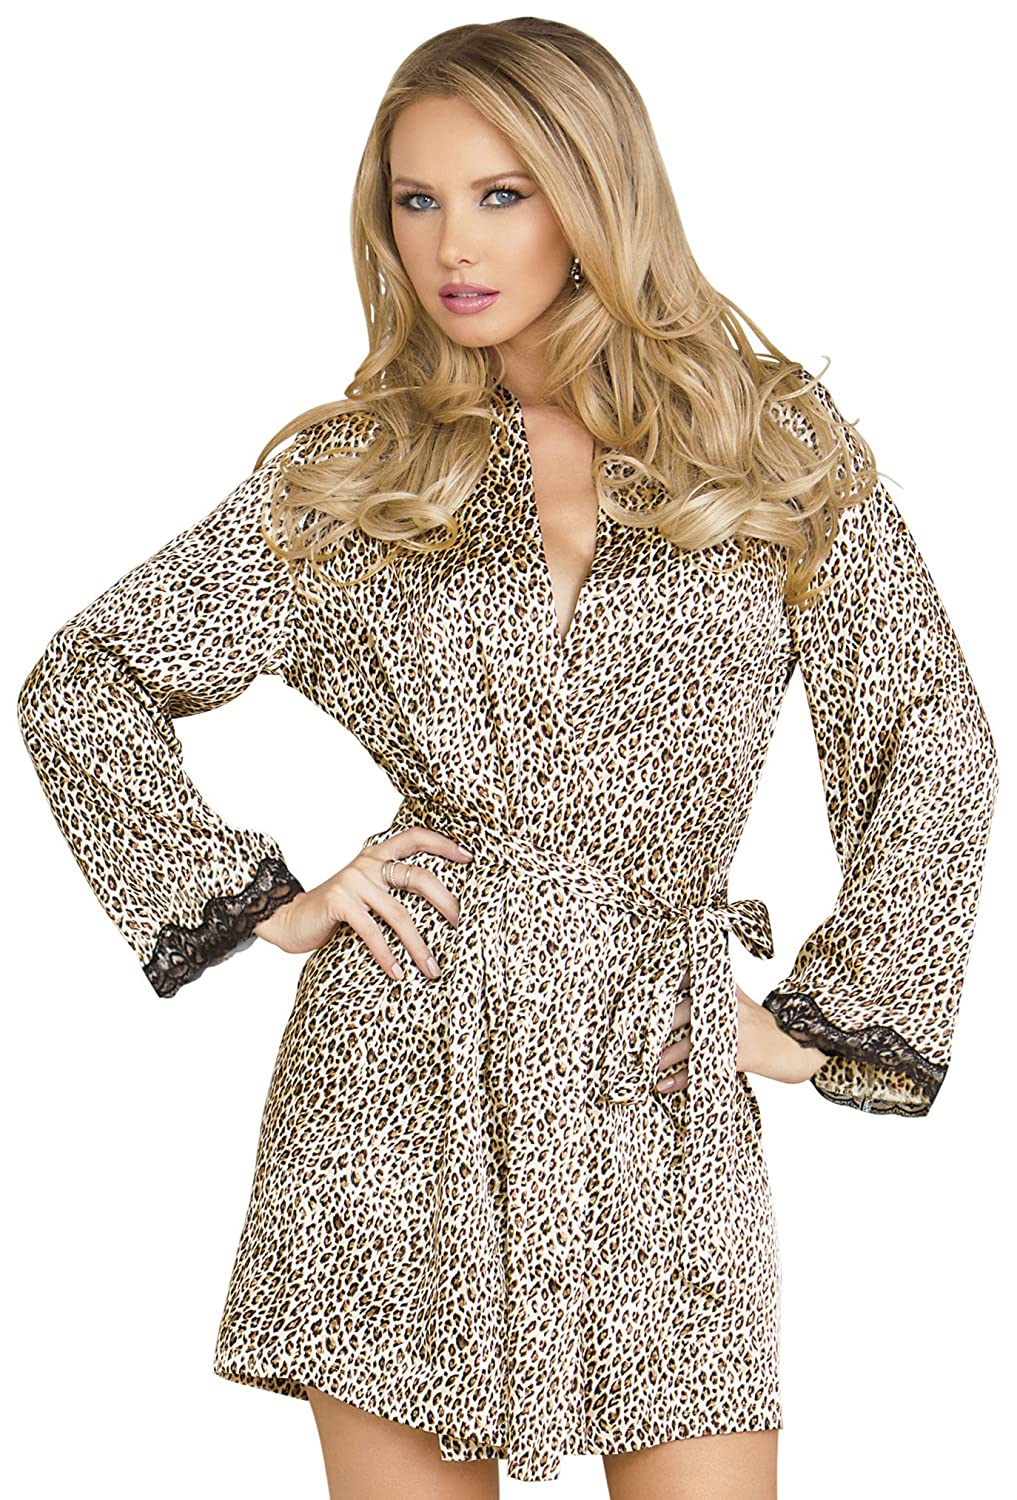 iCollection Lingerie womens Long Sleeve Satin Robe iCollection Exotic IA 7830